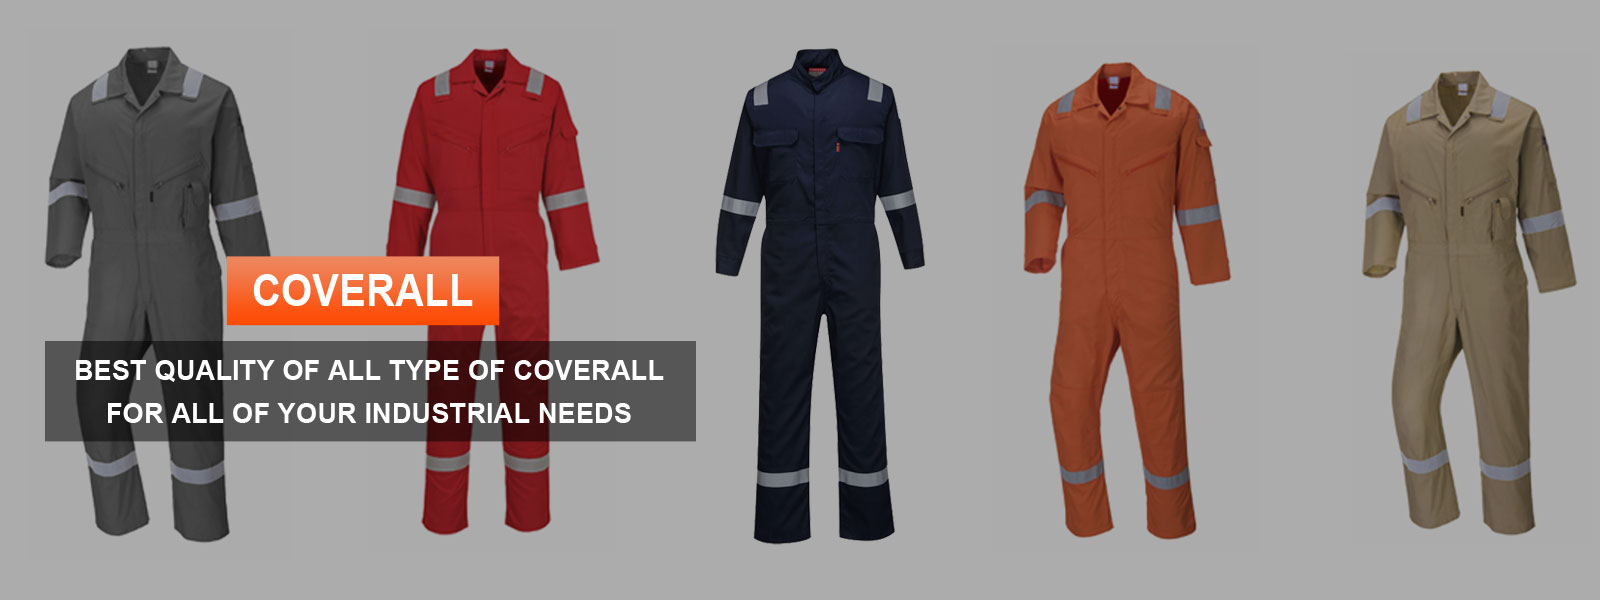 Coverall Manufacturers in Goa